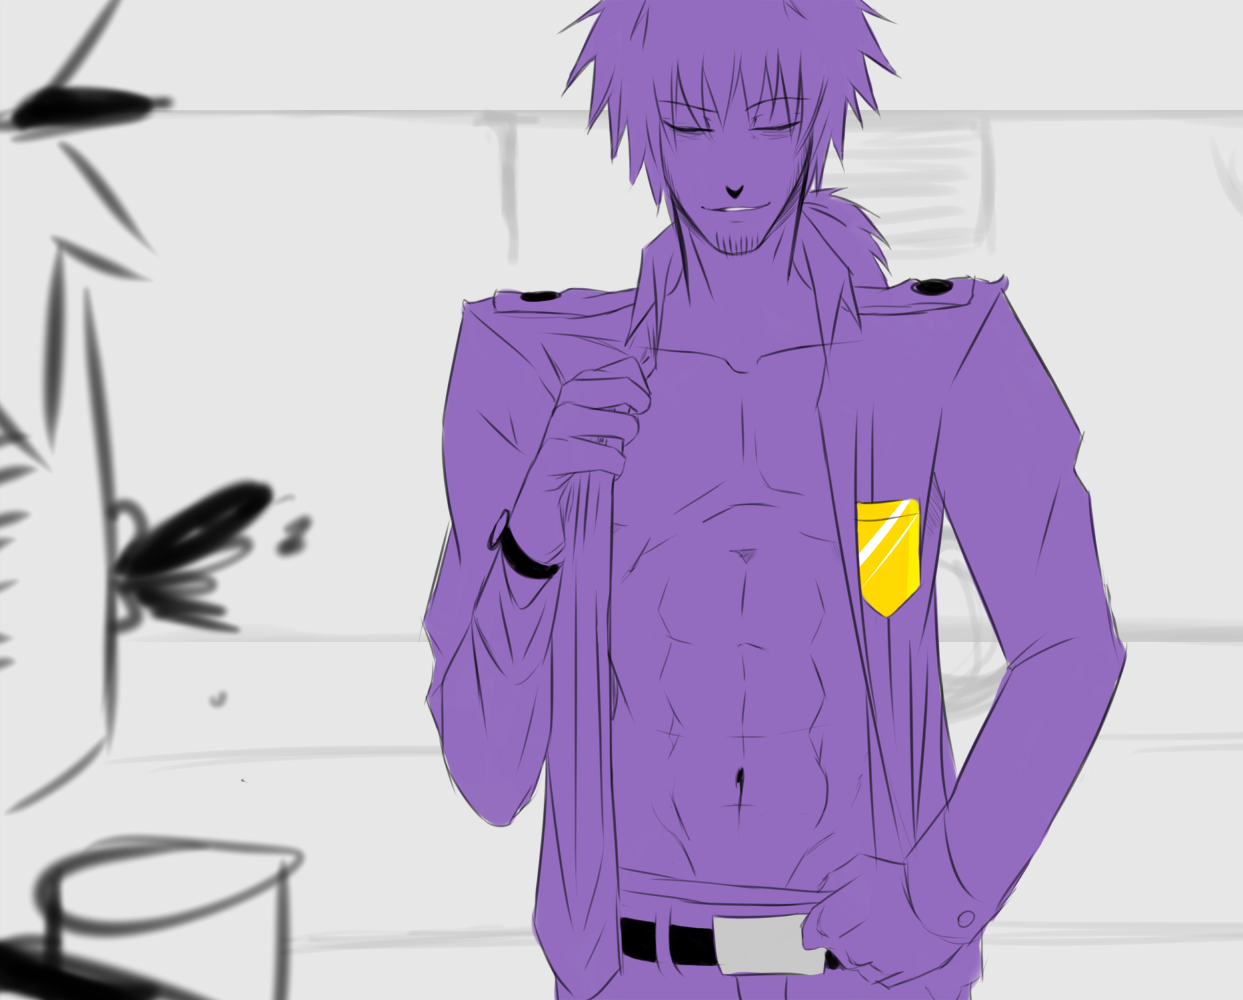 Phone guy x purple guy fanfic lemon - I Don T Know Which Night Guard Is There But I Do Know That Purple